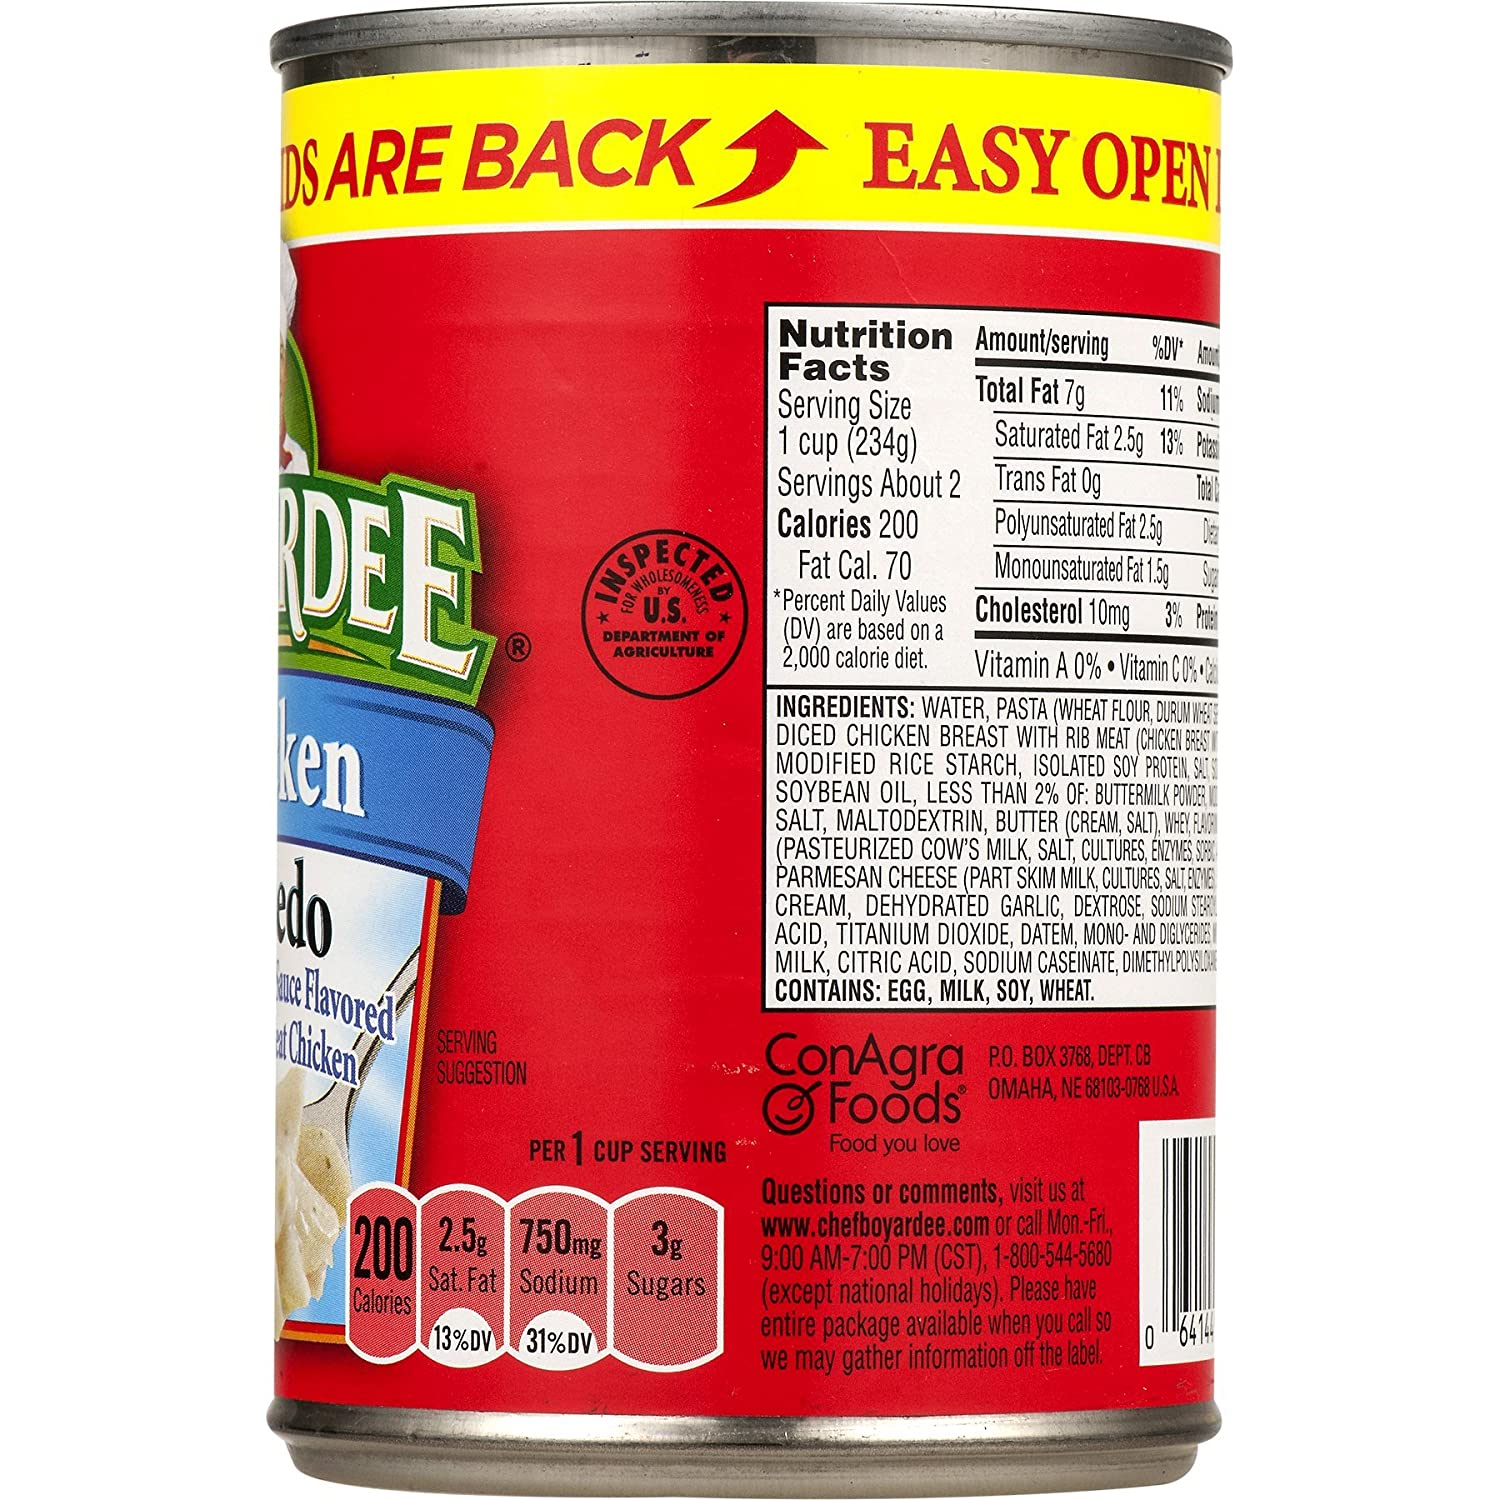 Amazon.com : Chef Boyardee, Chicken Alfredo, 15oz Can (Pack of 6) : Ravioli : Grocery & Gourmet Food